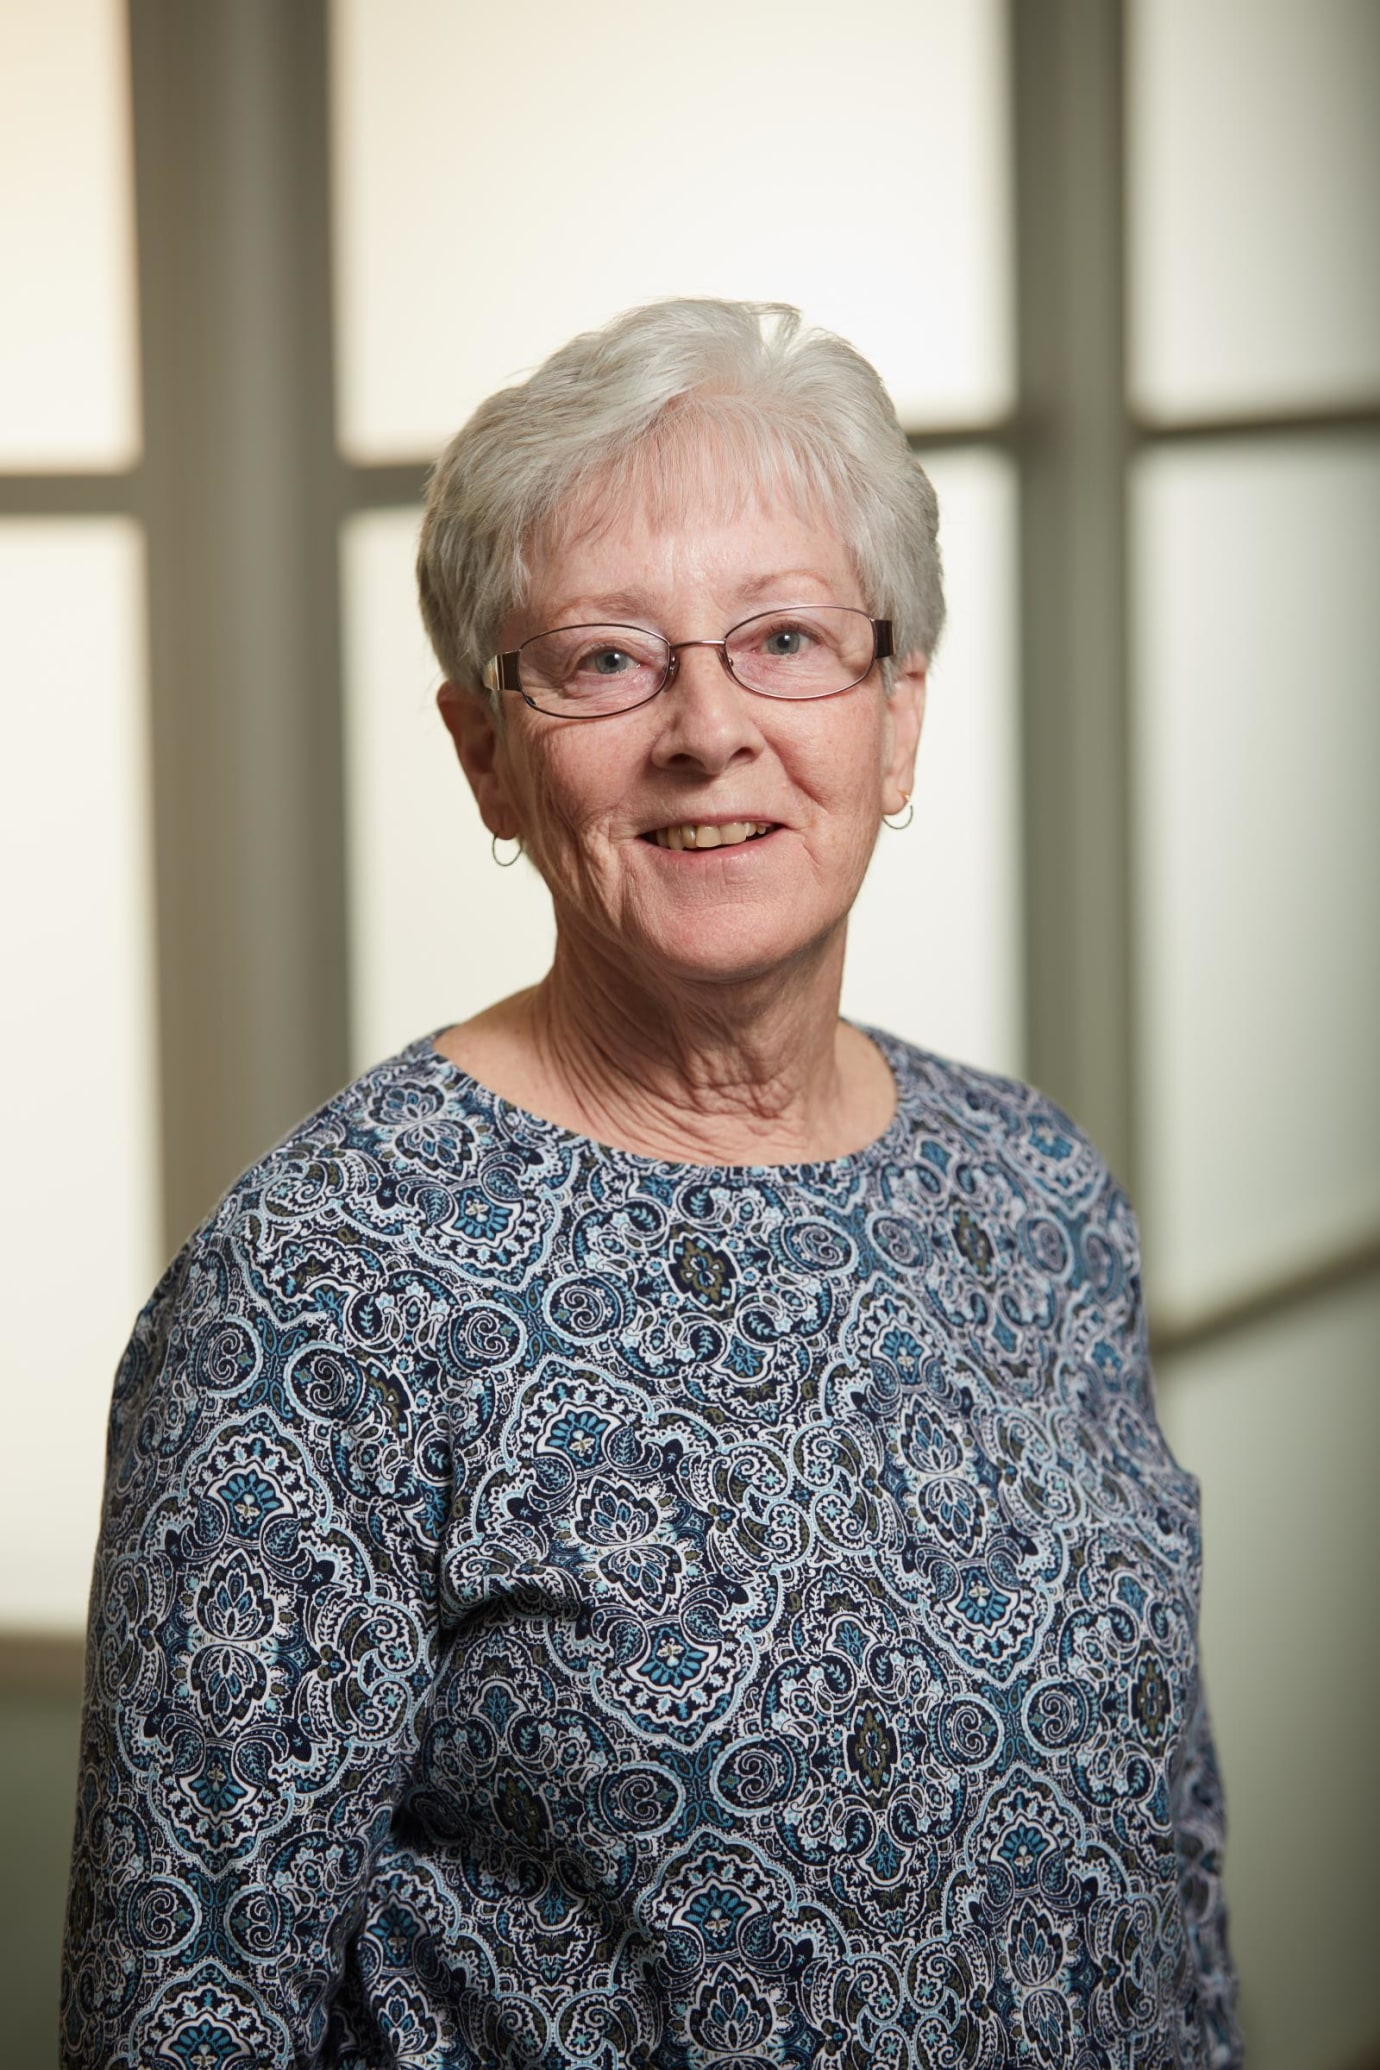 Kathy, longtime supporter and participant in clinical research at Yale.